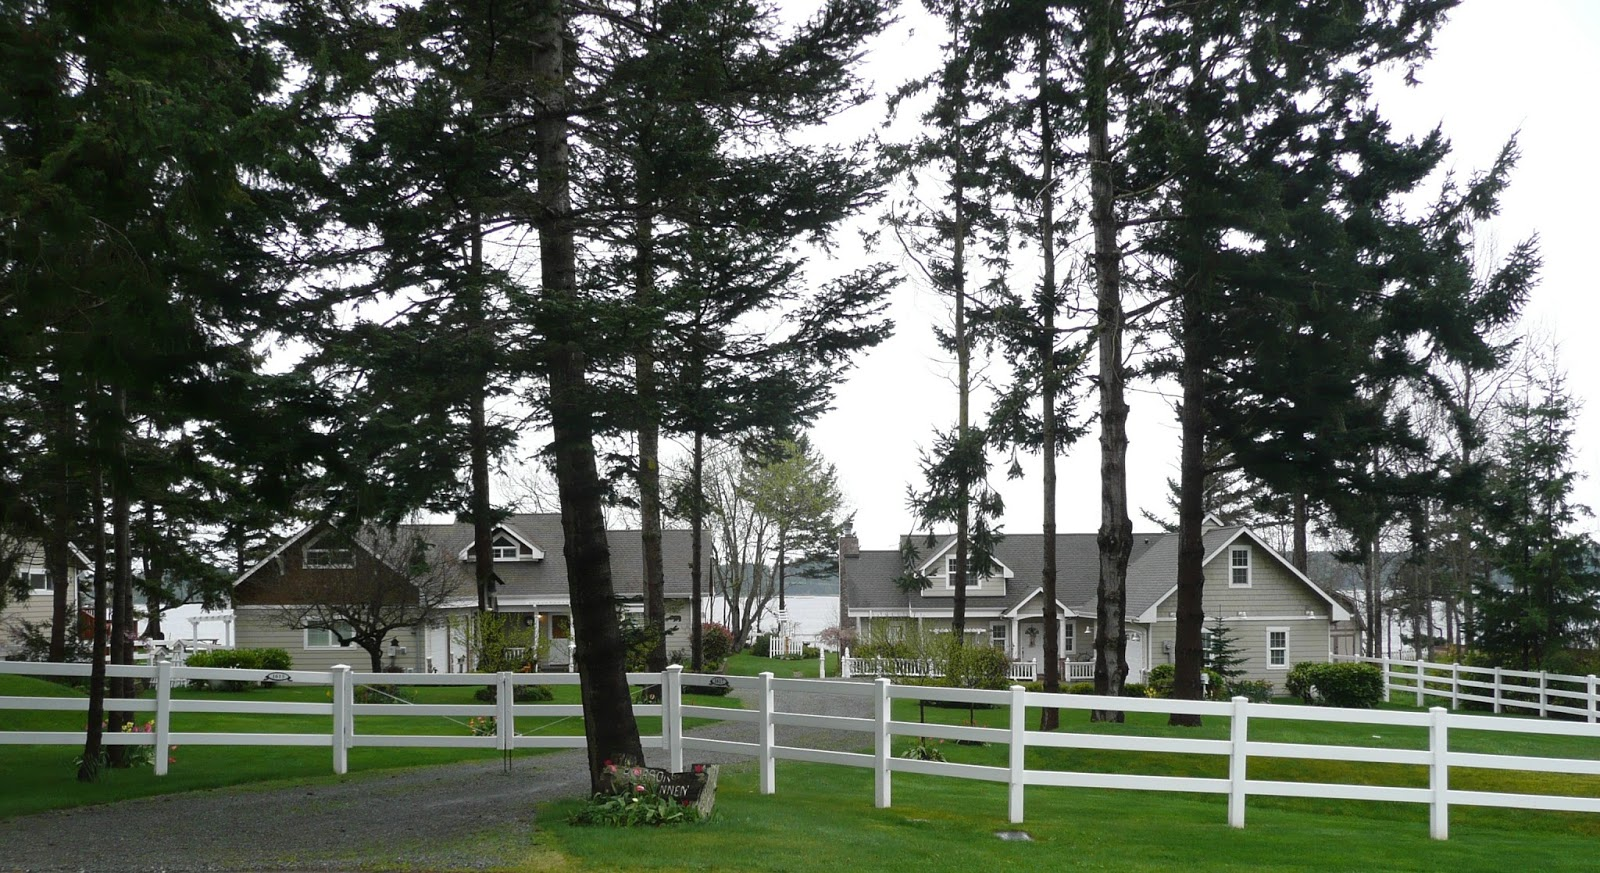 Clifton View Homes Welcome To Clifton View Homes Whidbey Island S Premier Custom Home Builder